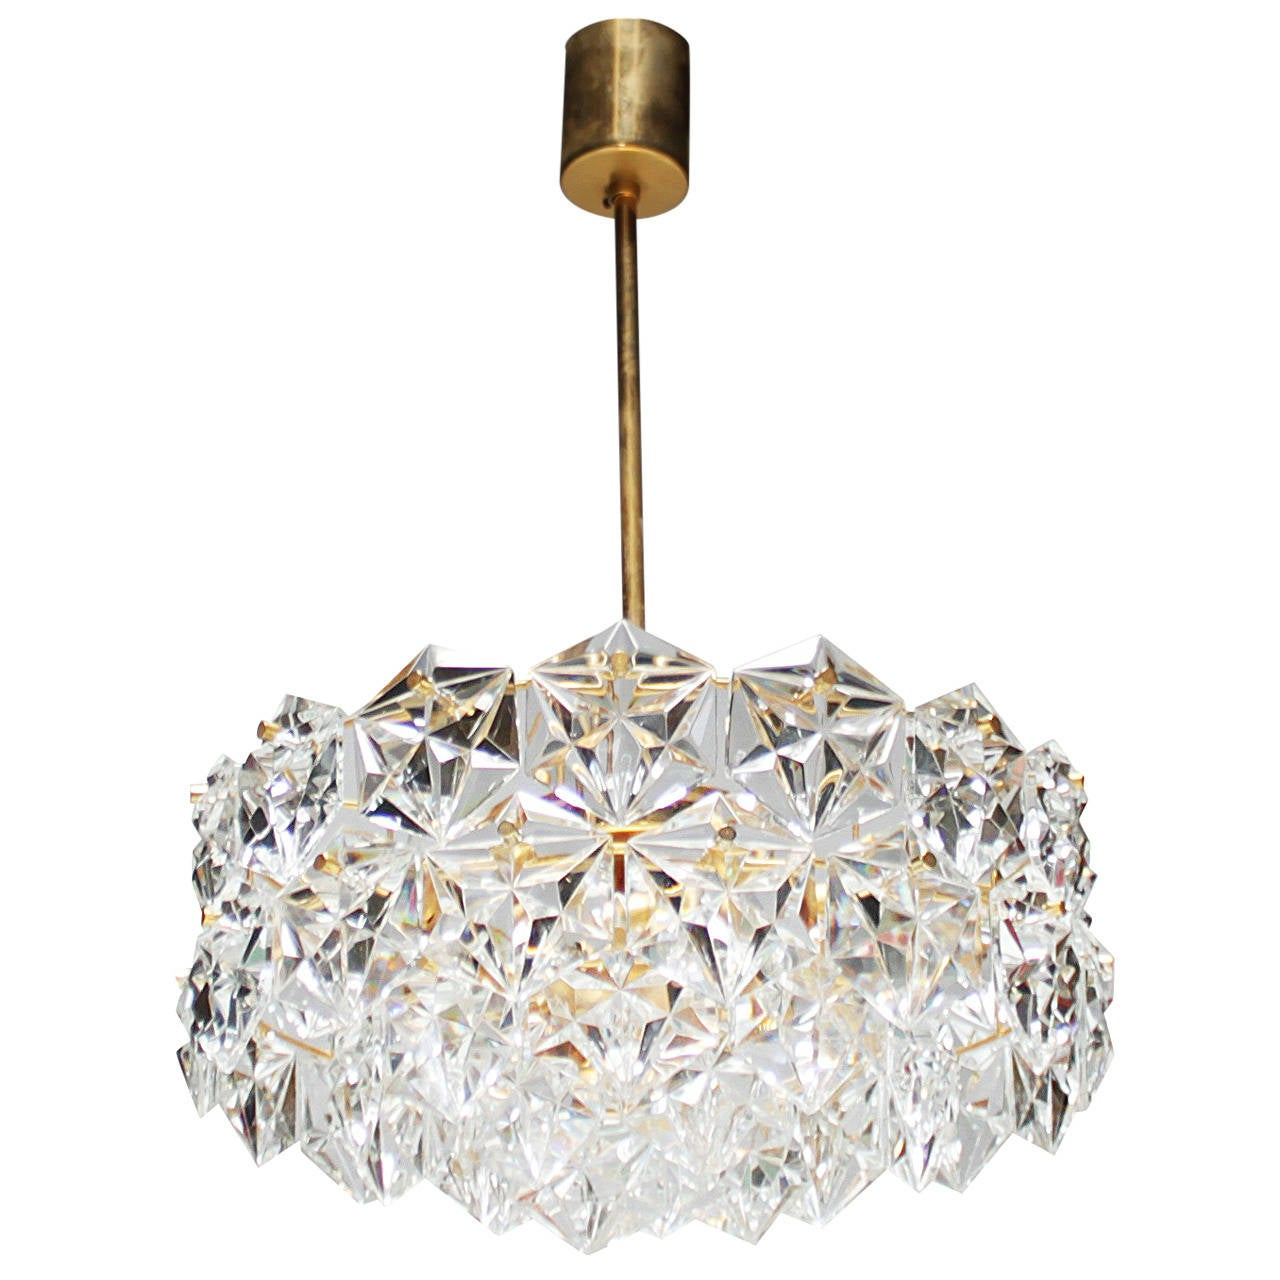 Gold plated kinkeldey chandelier with hexagonal crystals at 1stdibs gold plated kinkeldey chandelier with hexagonal crystals 1 mozeypictures Image collections